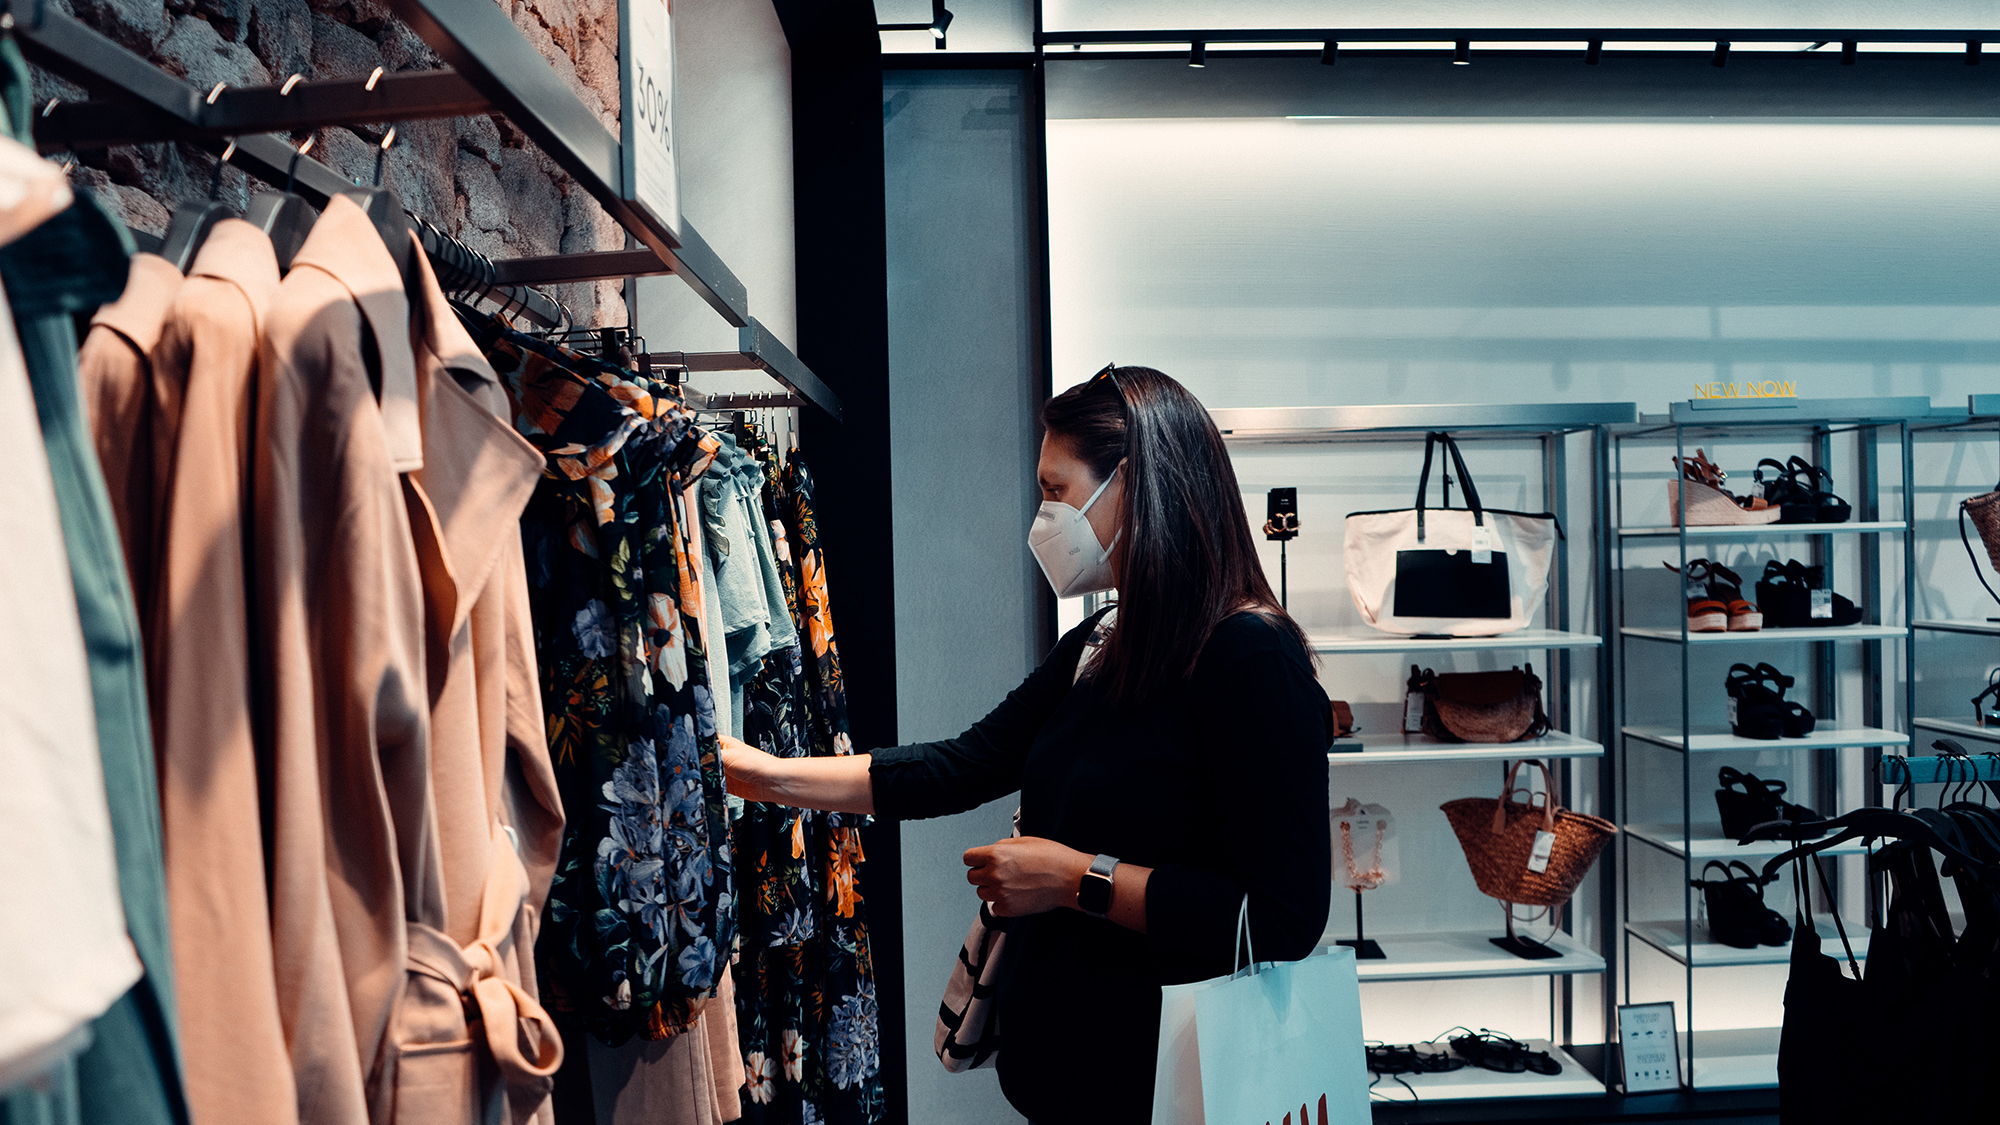 Post-COVID-19, Reimagining Retail Part 1: Employee And Customer Safety